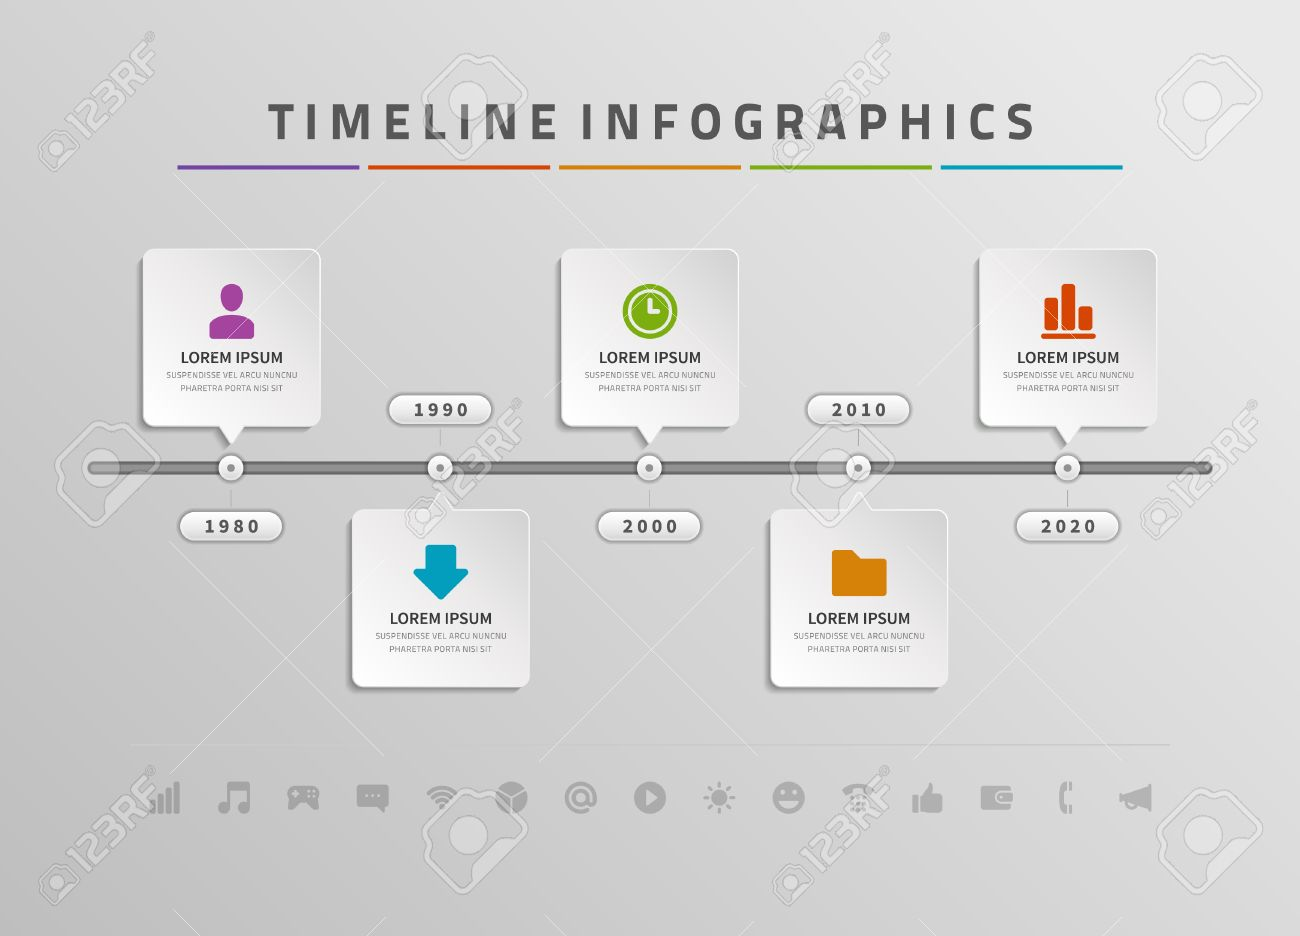 Timeline Infographic And Icons Vector Design Template For Web - Timeline design template